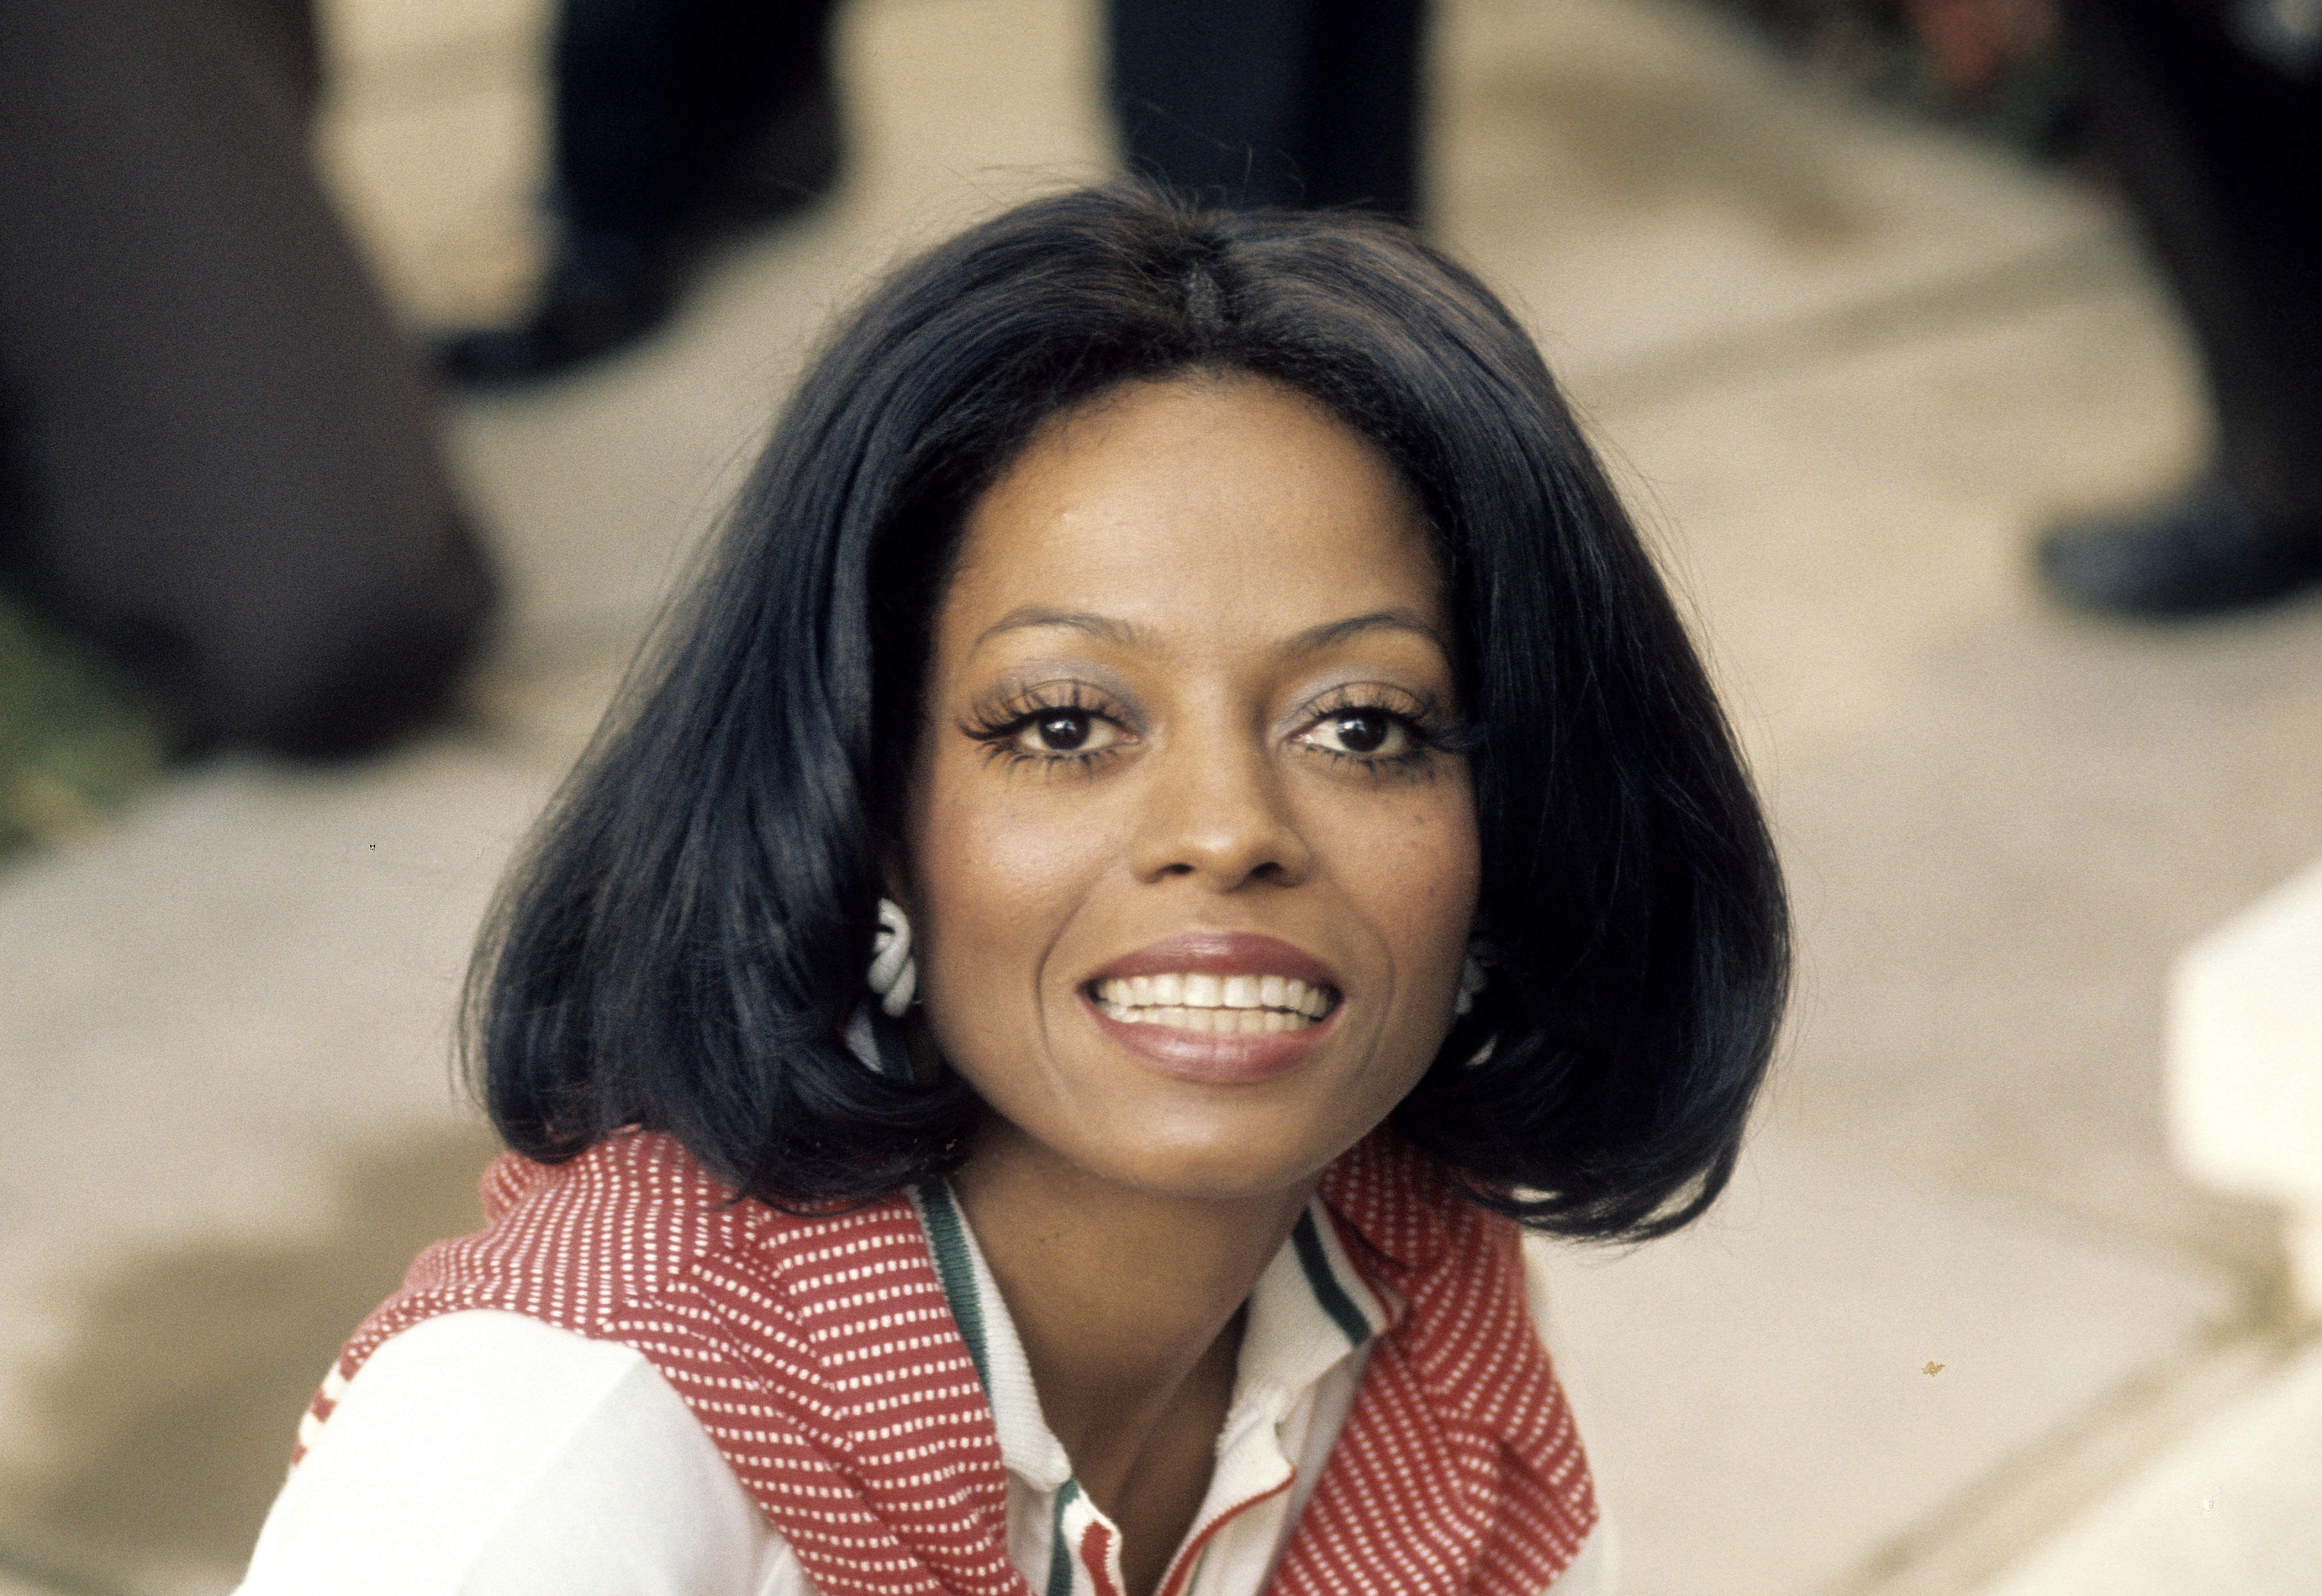 Singer Diana Ross visits London to promote her new album in September 1973. | Photo: GettyImages